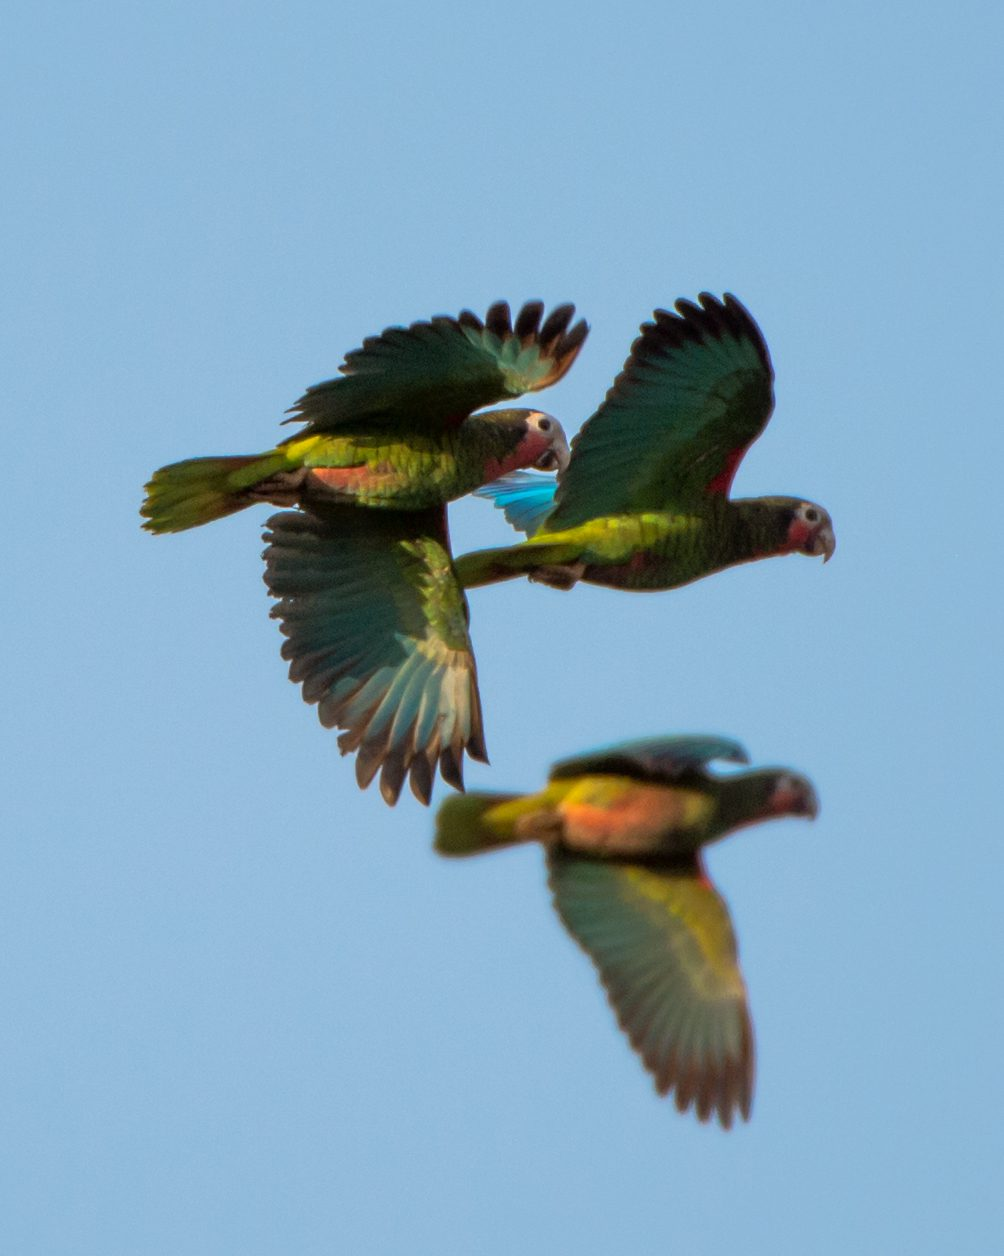 Cuban Parrots are beautiful, noisy, and &quot;near threatened&quot; due to habitat loss and collection for the pet trade.